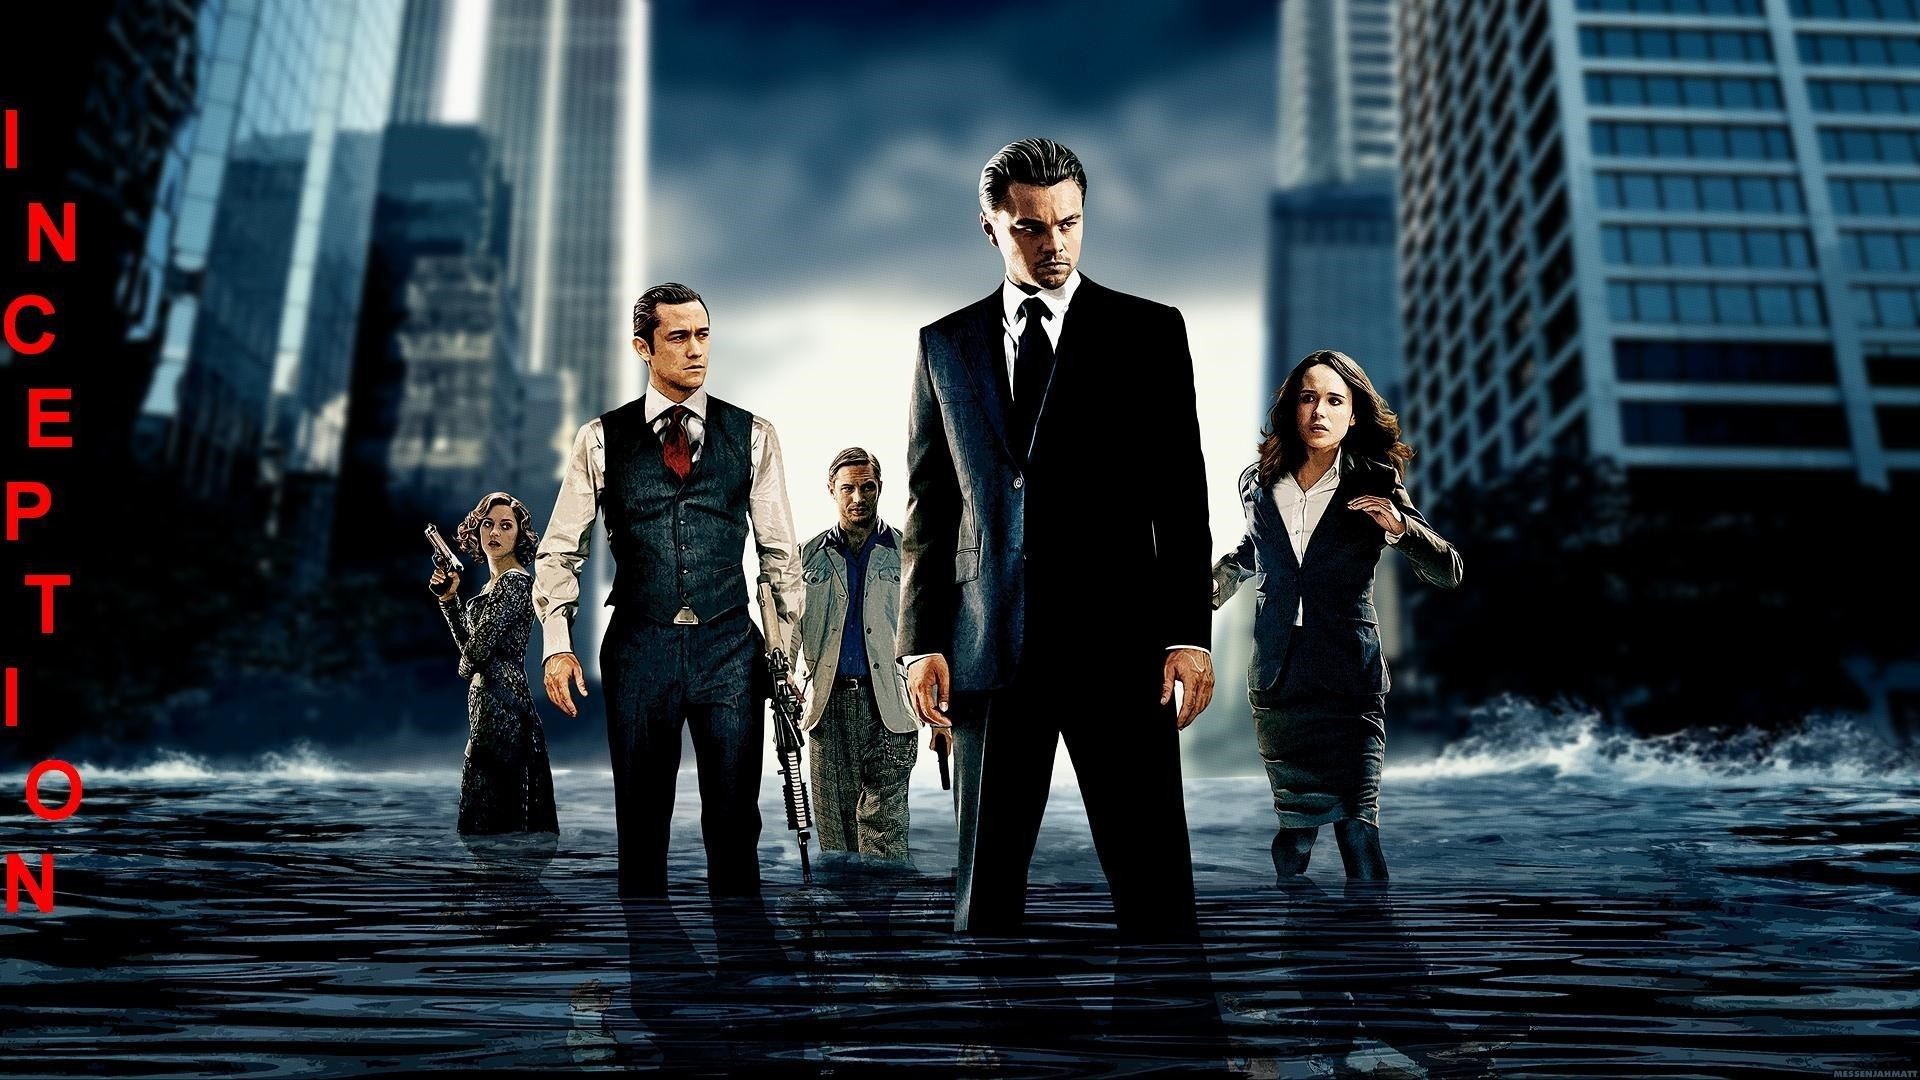 Inception Wallpaper Download